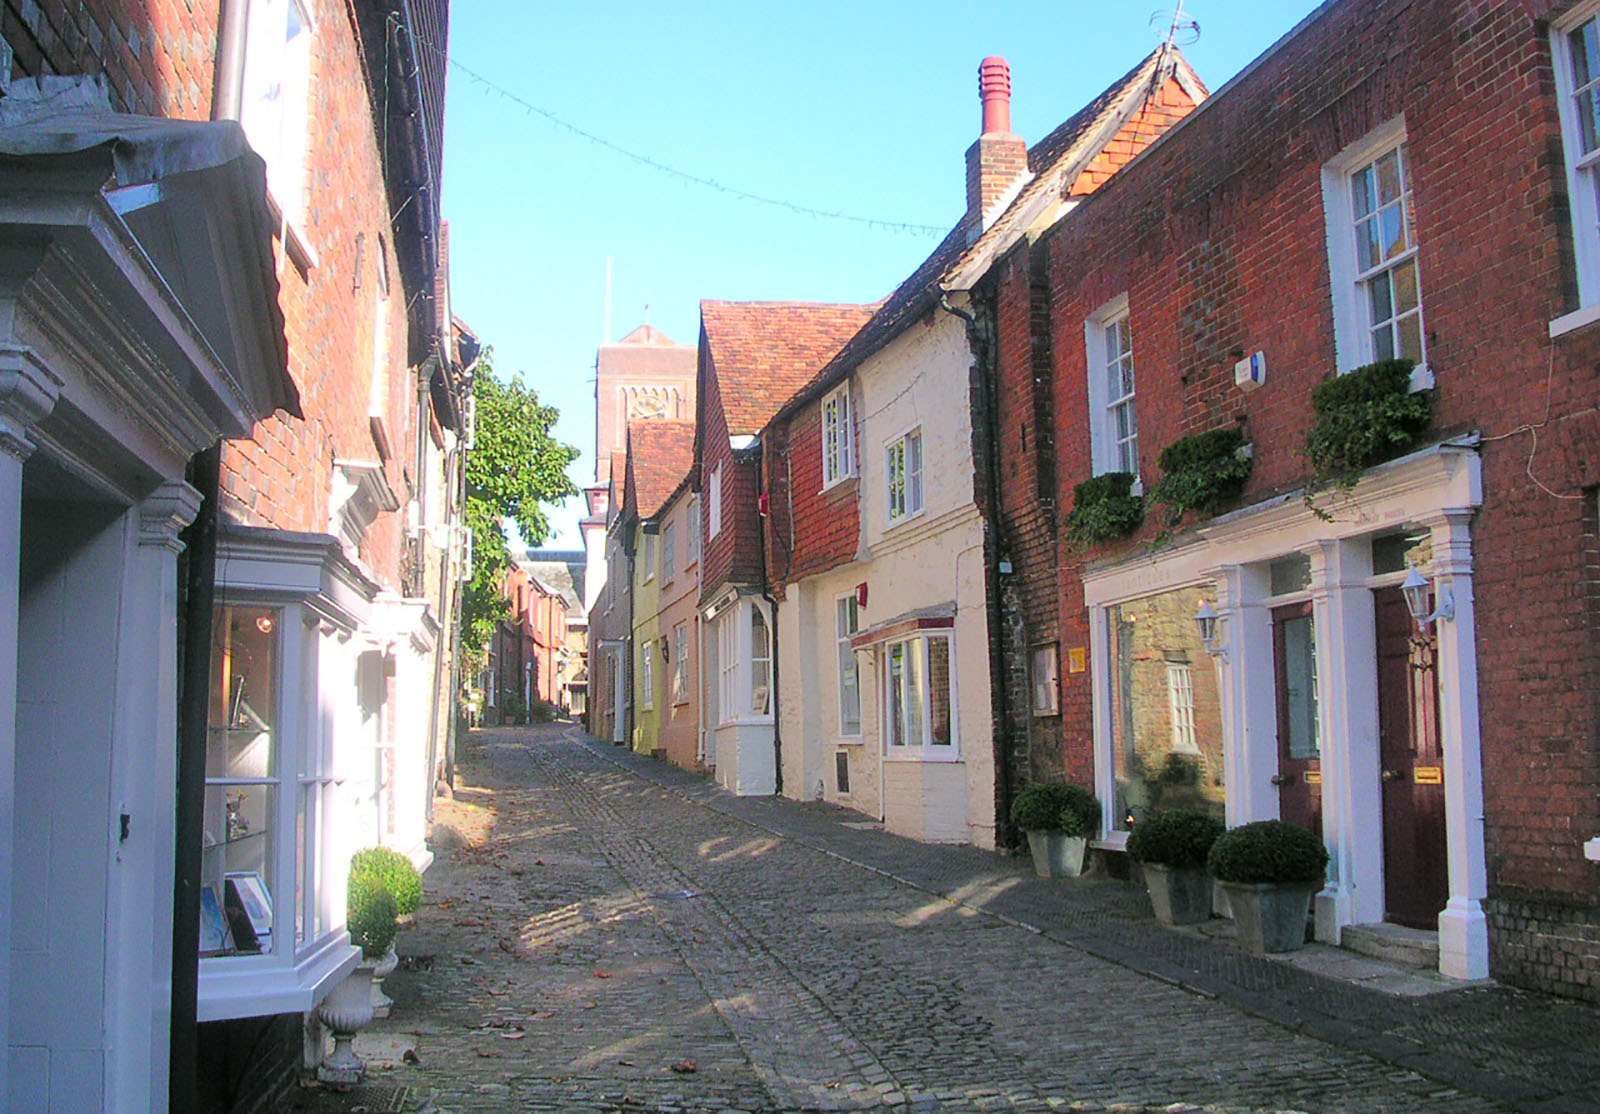 Lombard Street - an old cobbled street in Petworth.